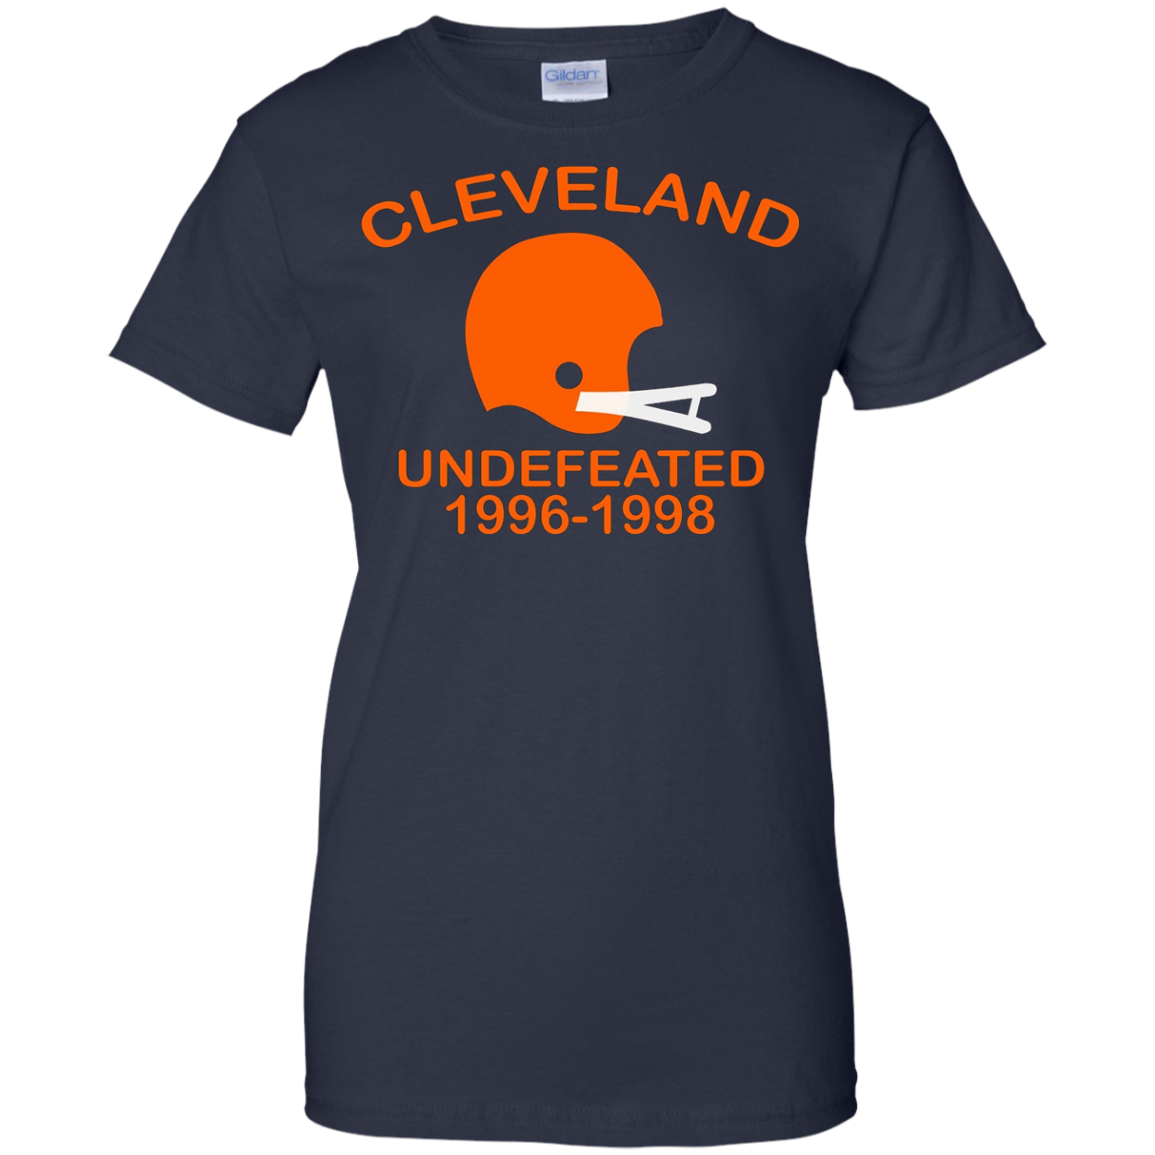 Cleveland Undefeated 1996 - 1998 T-shirt